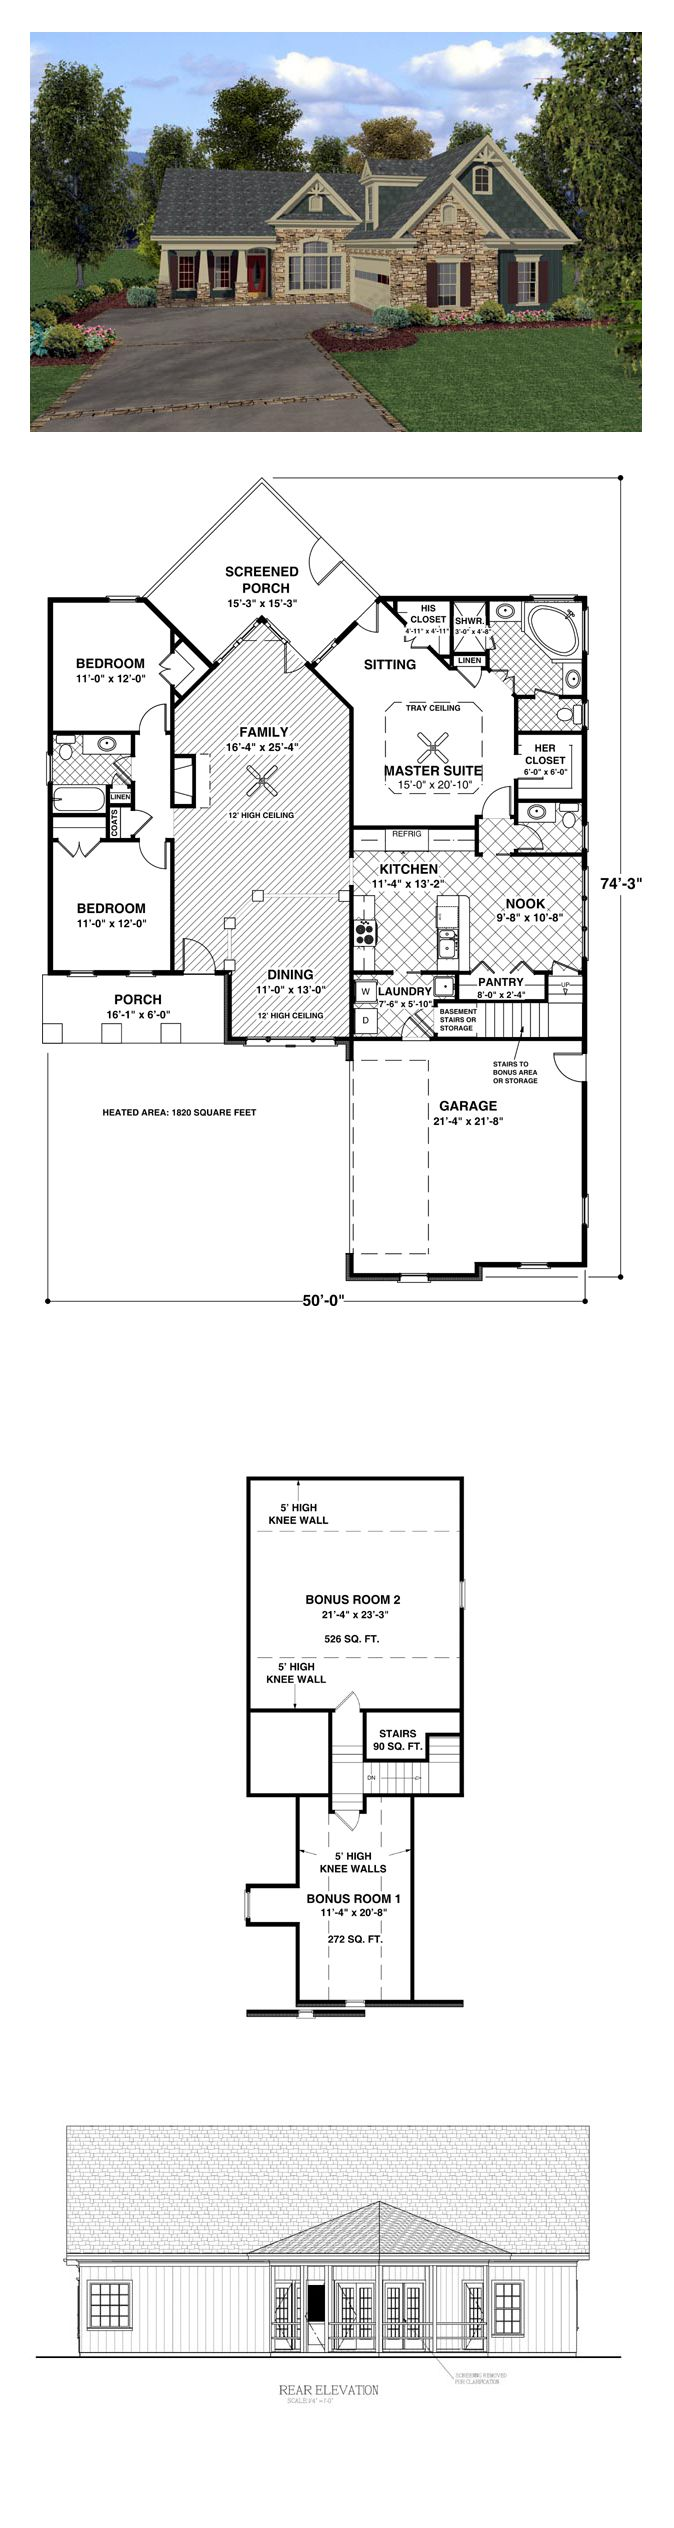 17 best bungalow house plans images on pinterest cool house bungalow style cool house plan id chp 36990 total living area 1831